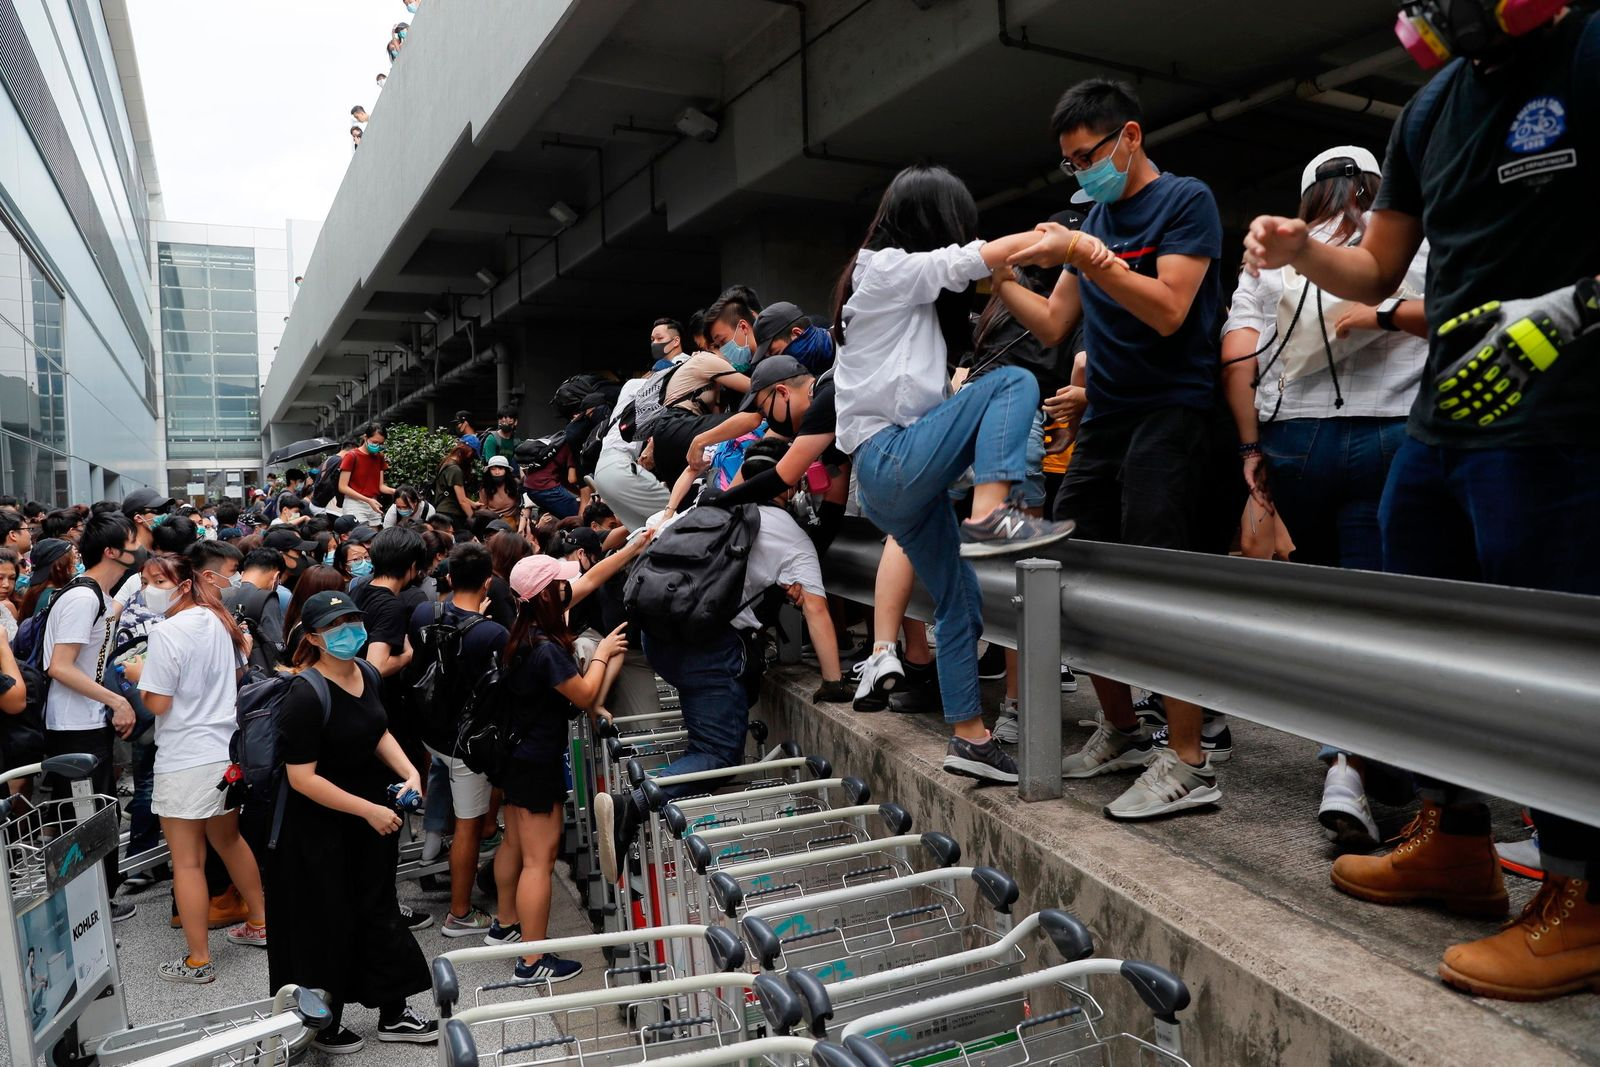 Pro-democracy protestors leave after riot police arrive outside the airport in Hong Kong, Sunday, Sept.1, 2019. (AP Photo/Kin Cheung)